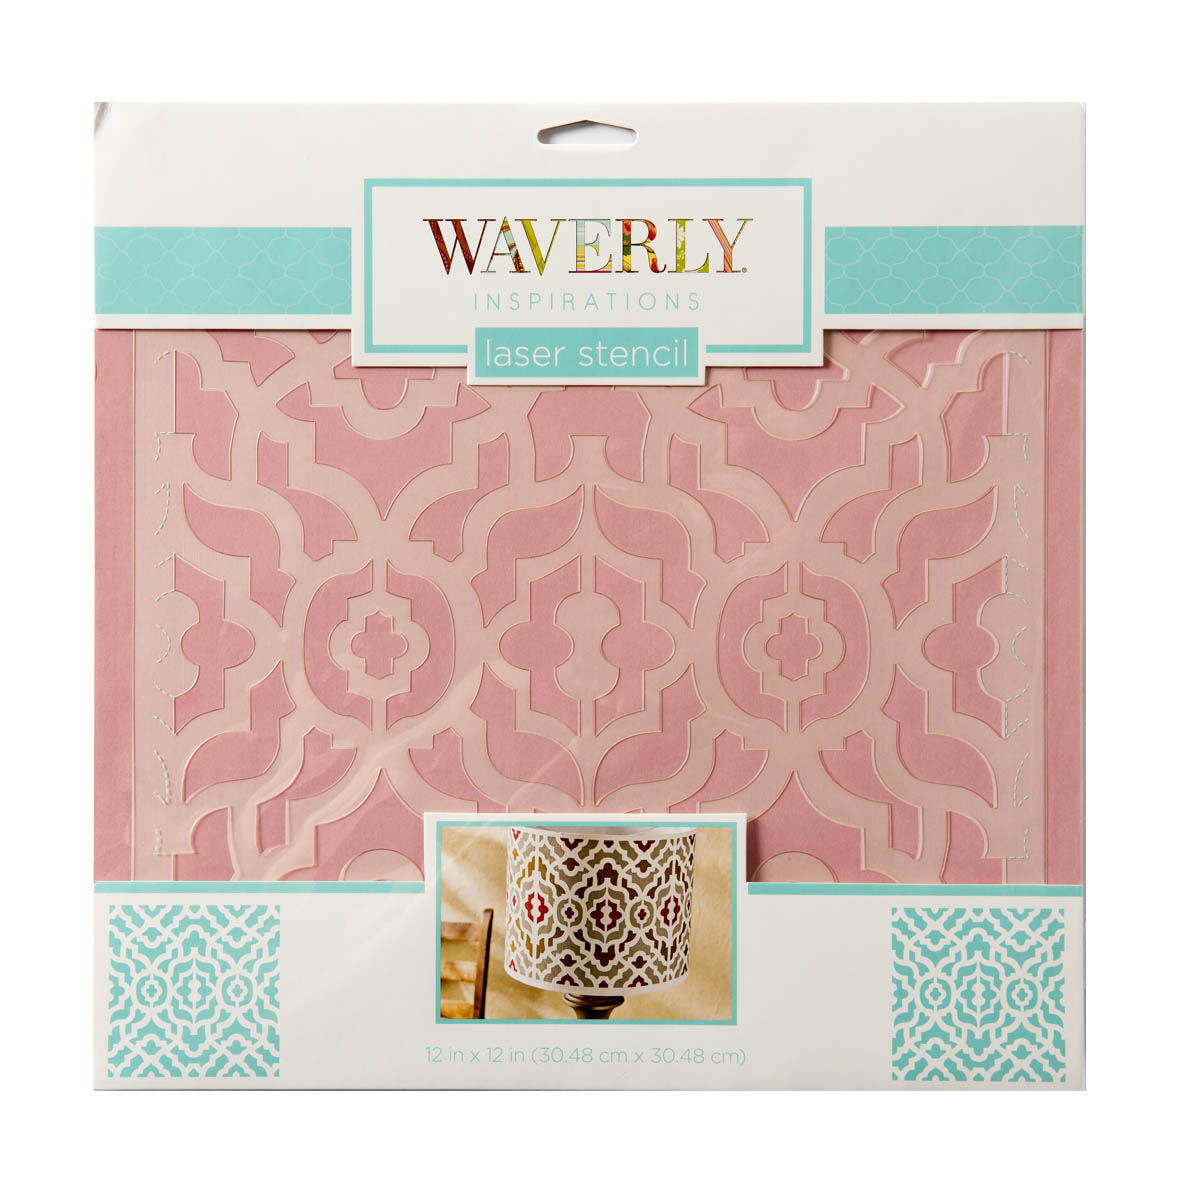 Waverly ® Inspirations Laser Stencils - Décor - Lattice, 12